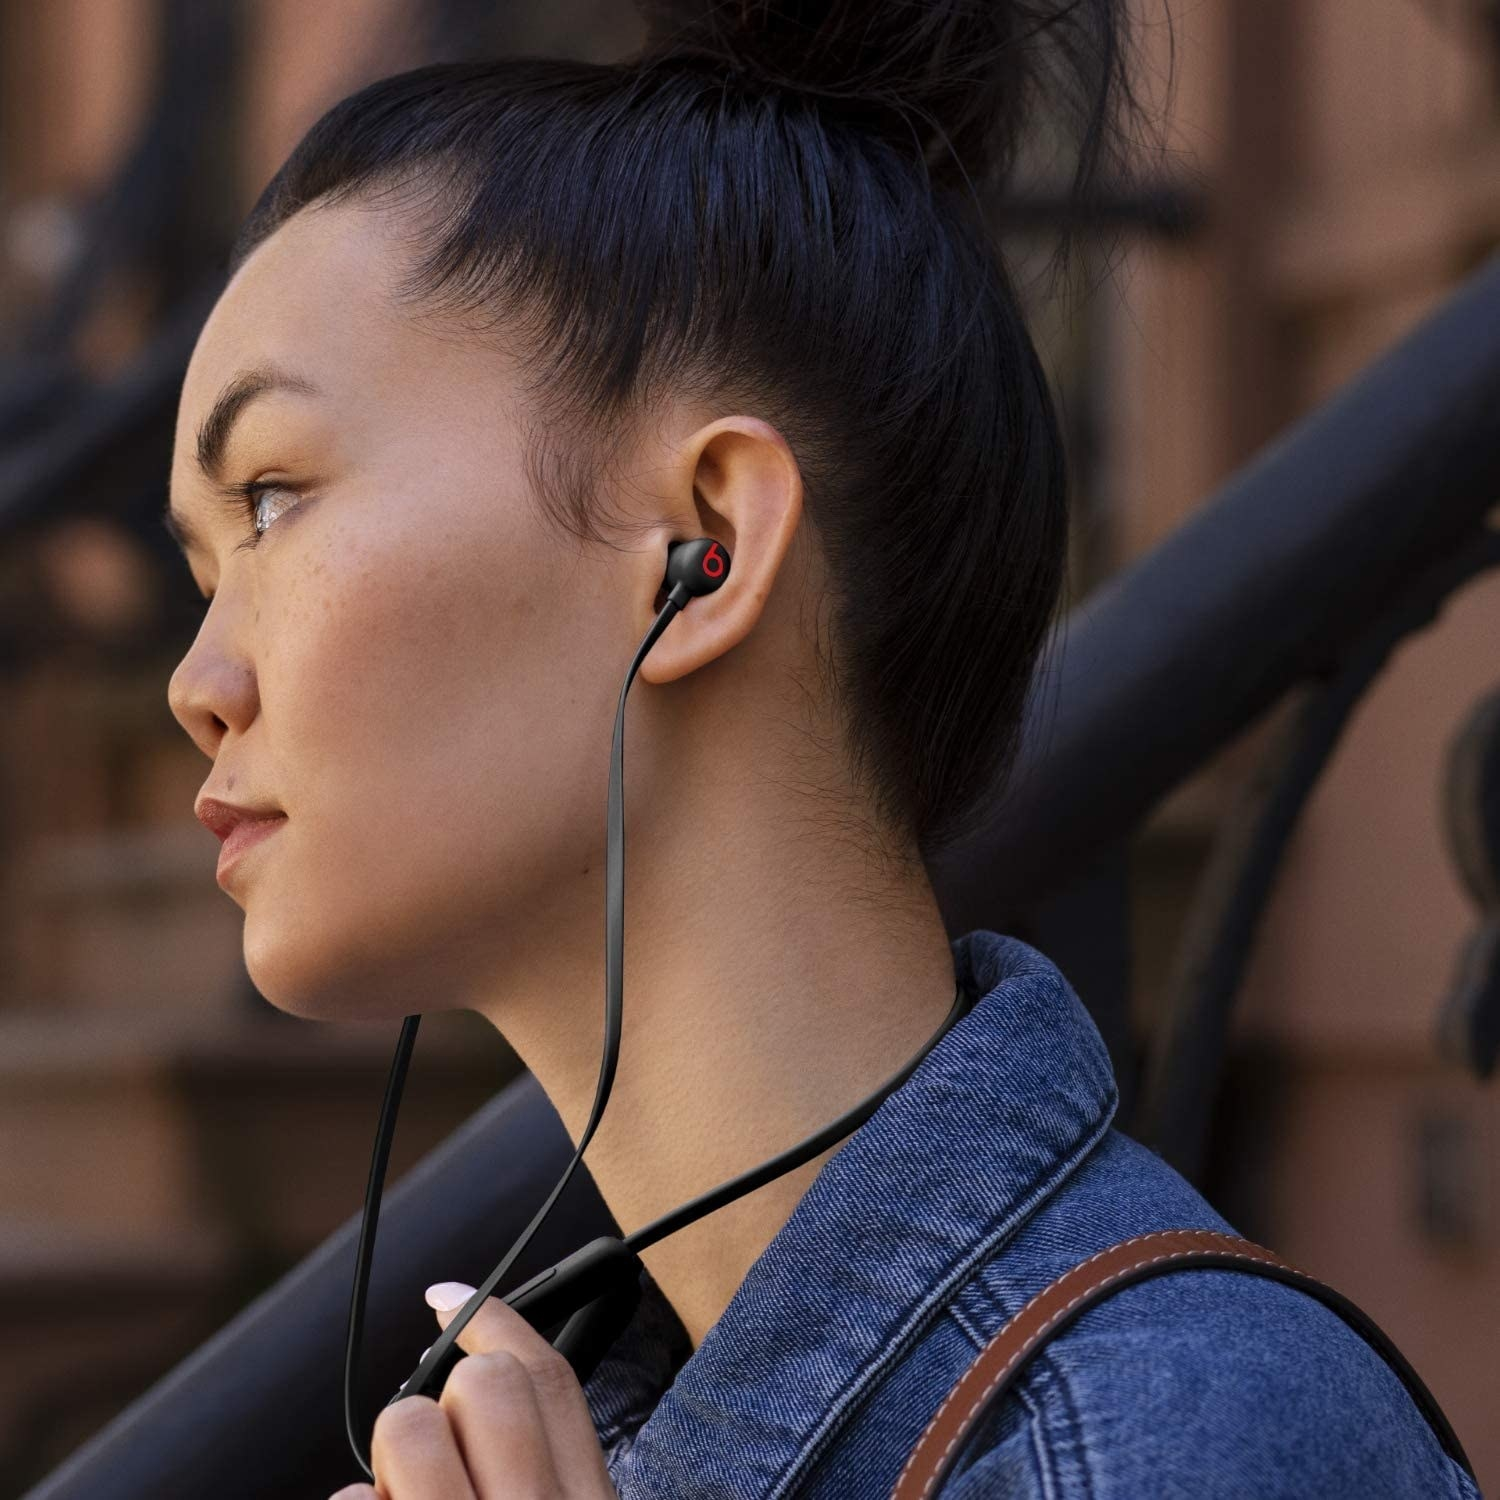 side profile of a girl with the beats earphone in her ear